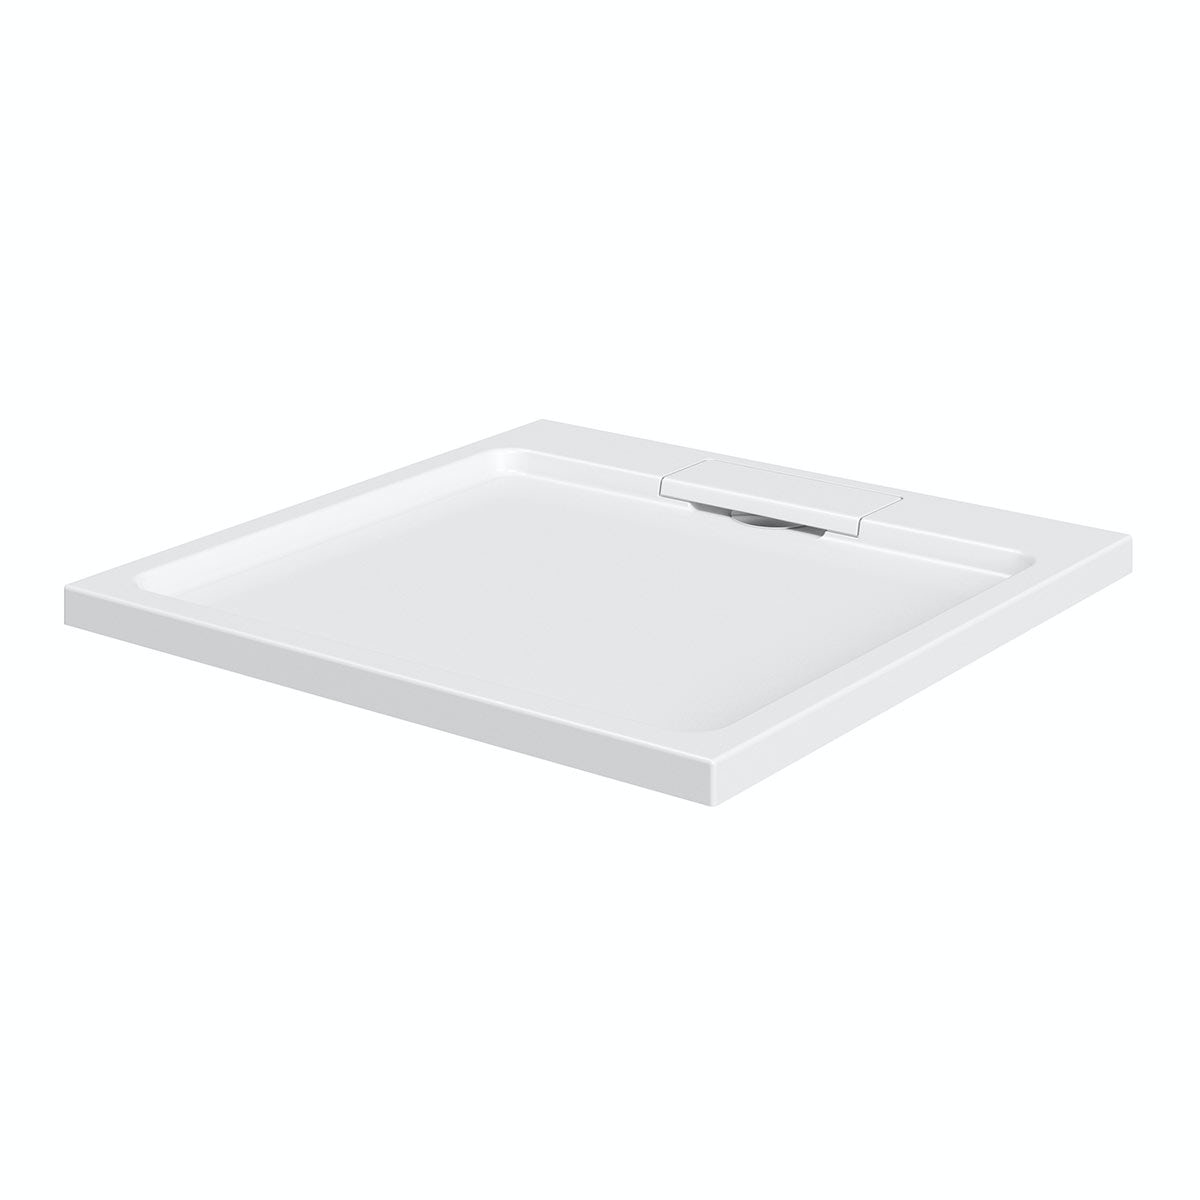 mode designer square stone shower tray